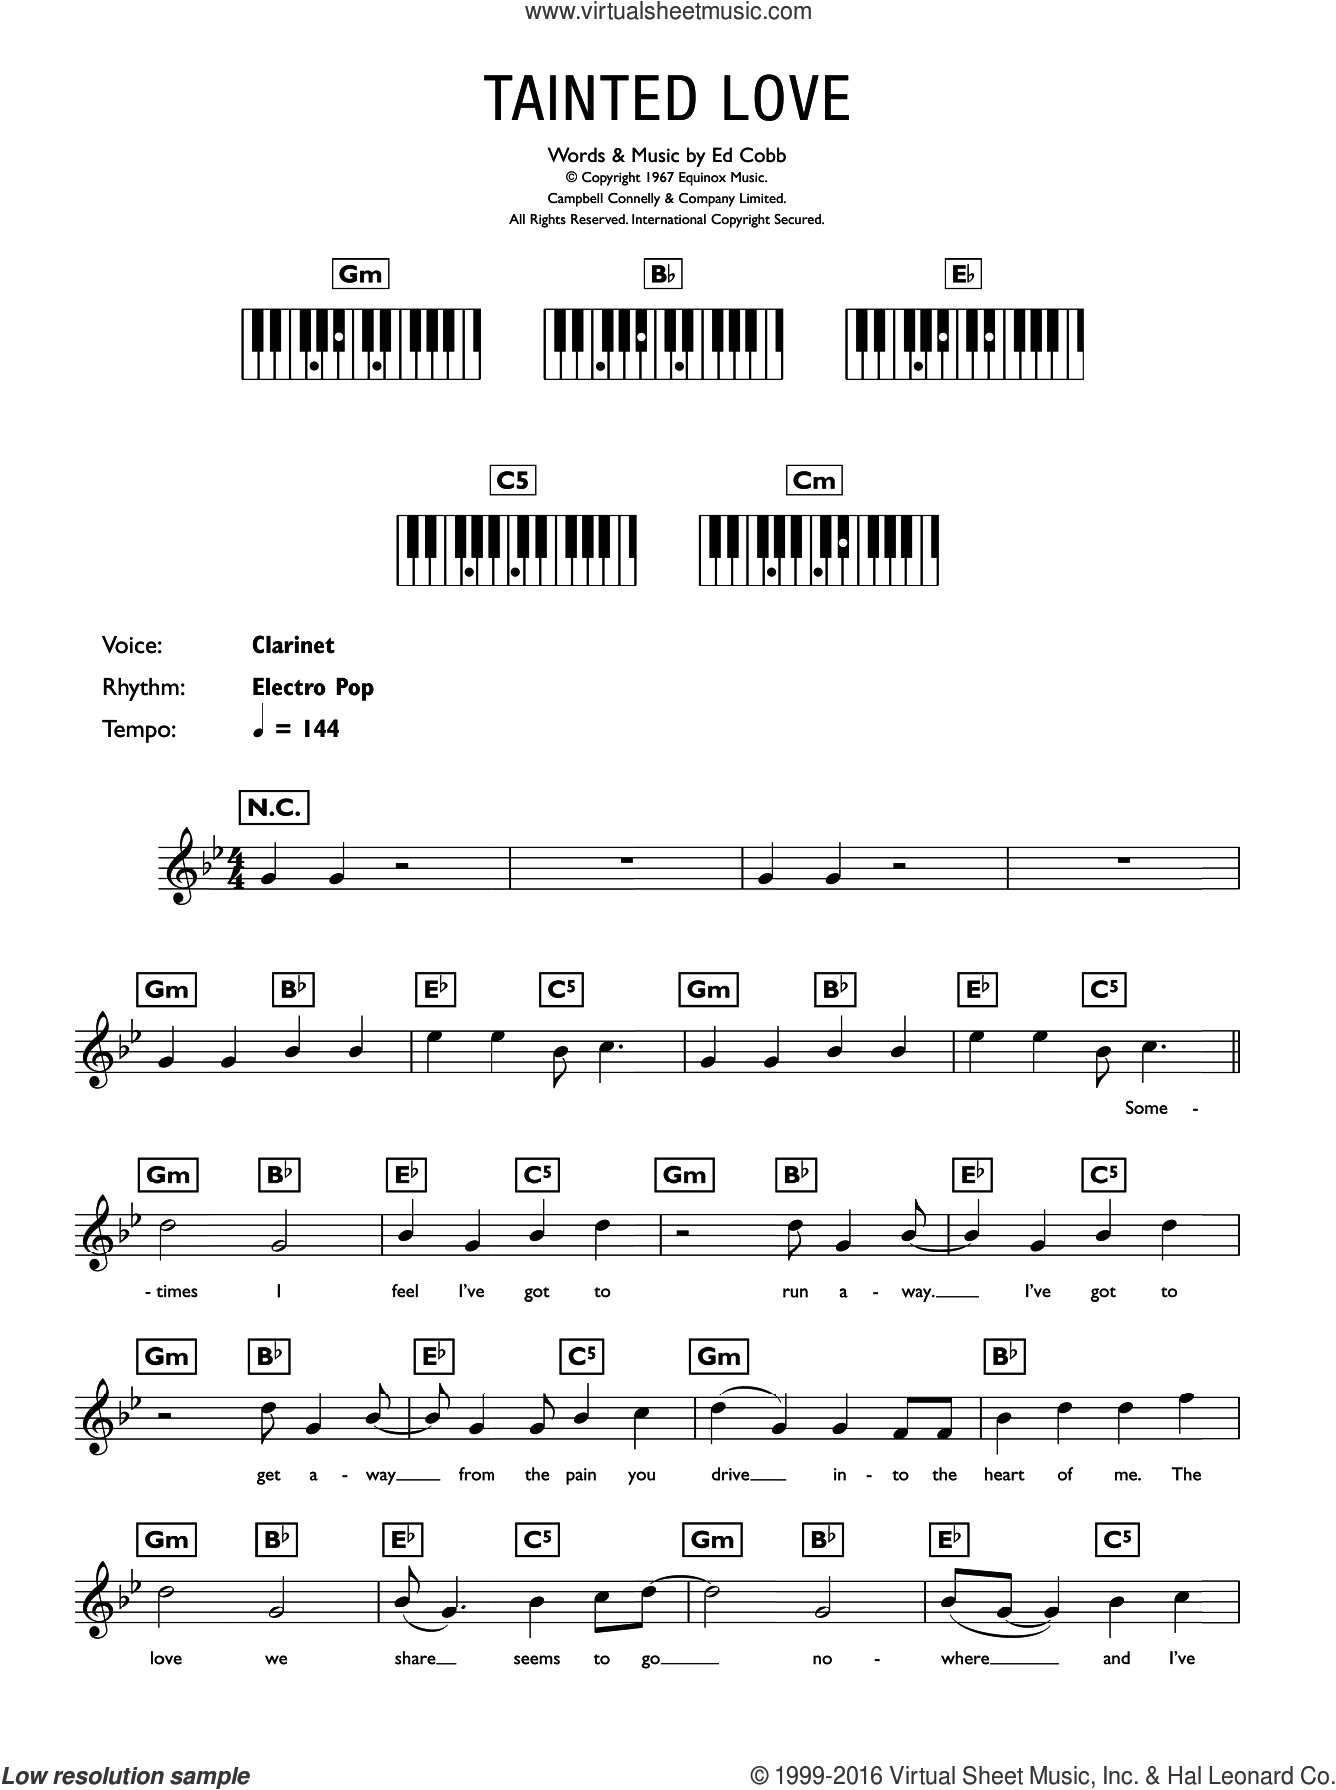 Tainted Love sheet music for piano solo (chords, lyrics, melody) by Ed Cobb. Score Image Preview.